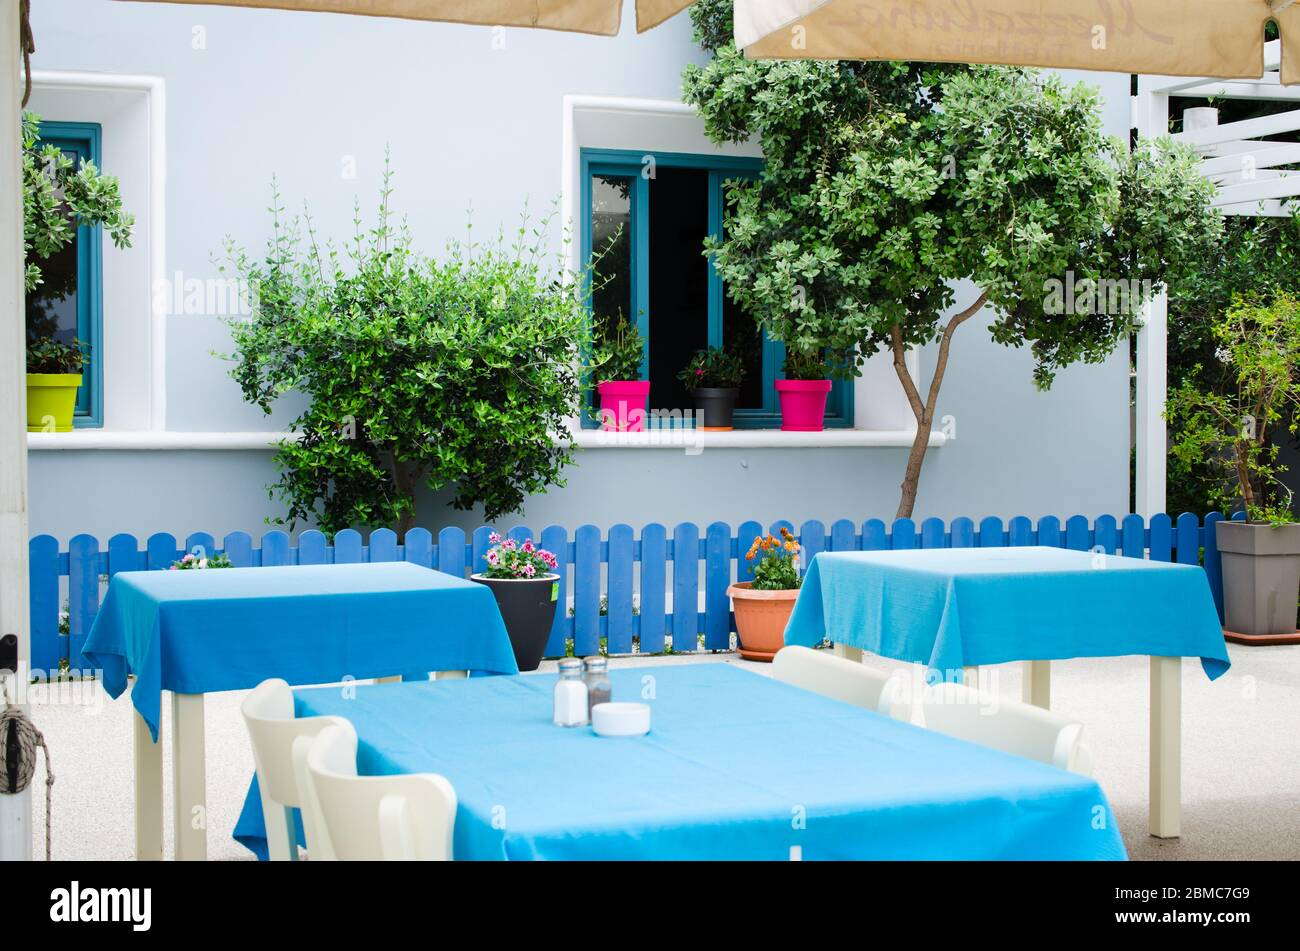 Cozy Summer Cafe Tables And Chairs On Outdoor Terrace Empty Street Cafe Or Restaurant Stock Photo Alamy